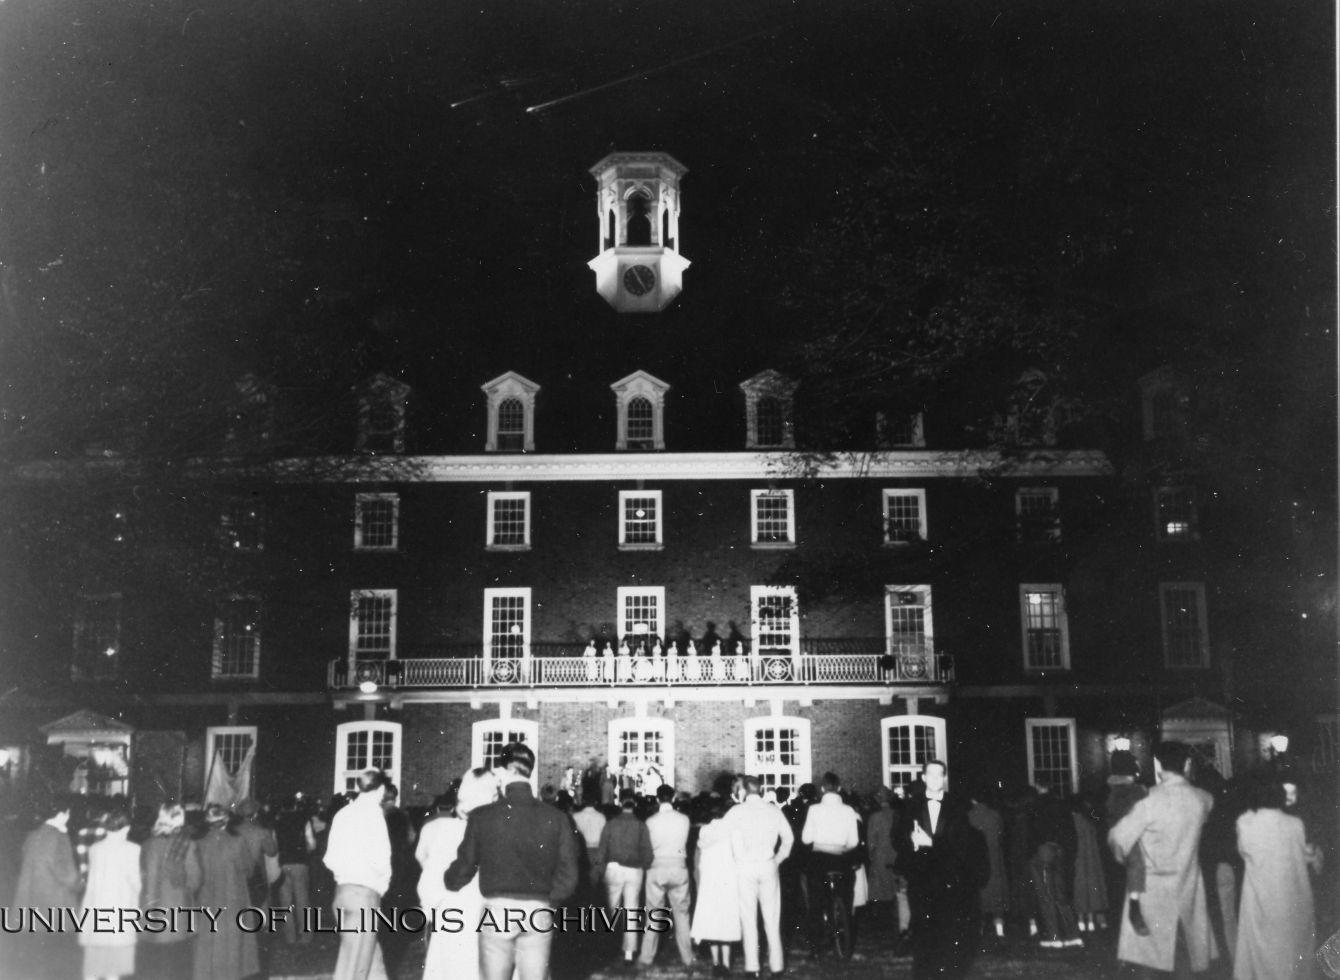 A+Homecoming+pep+rally+is+held+behind+the+student+Union+in+1954.